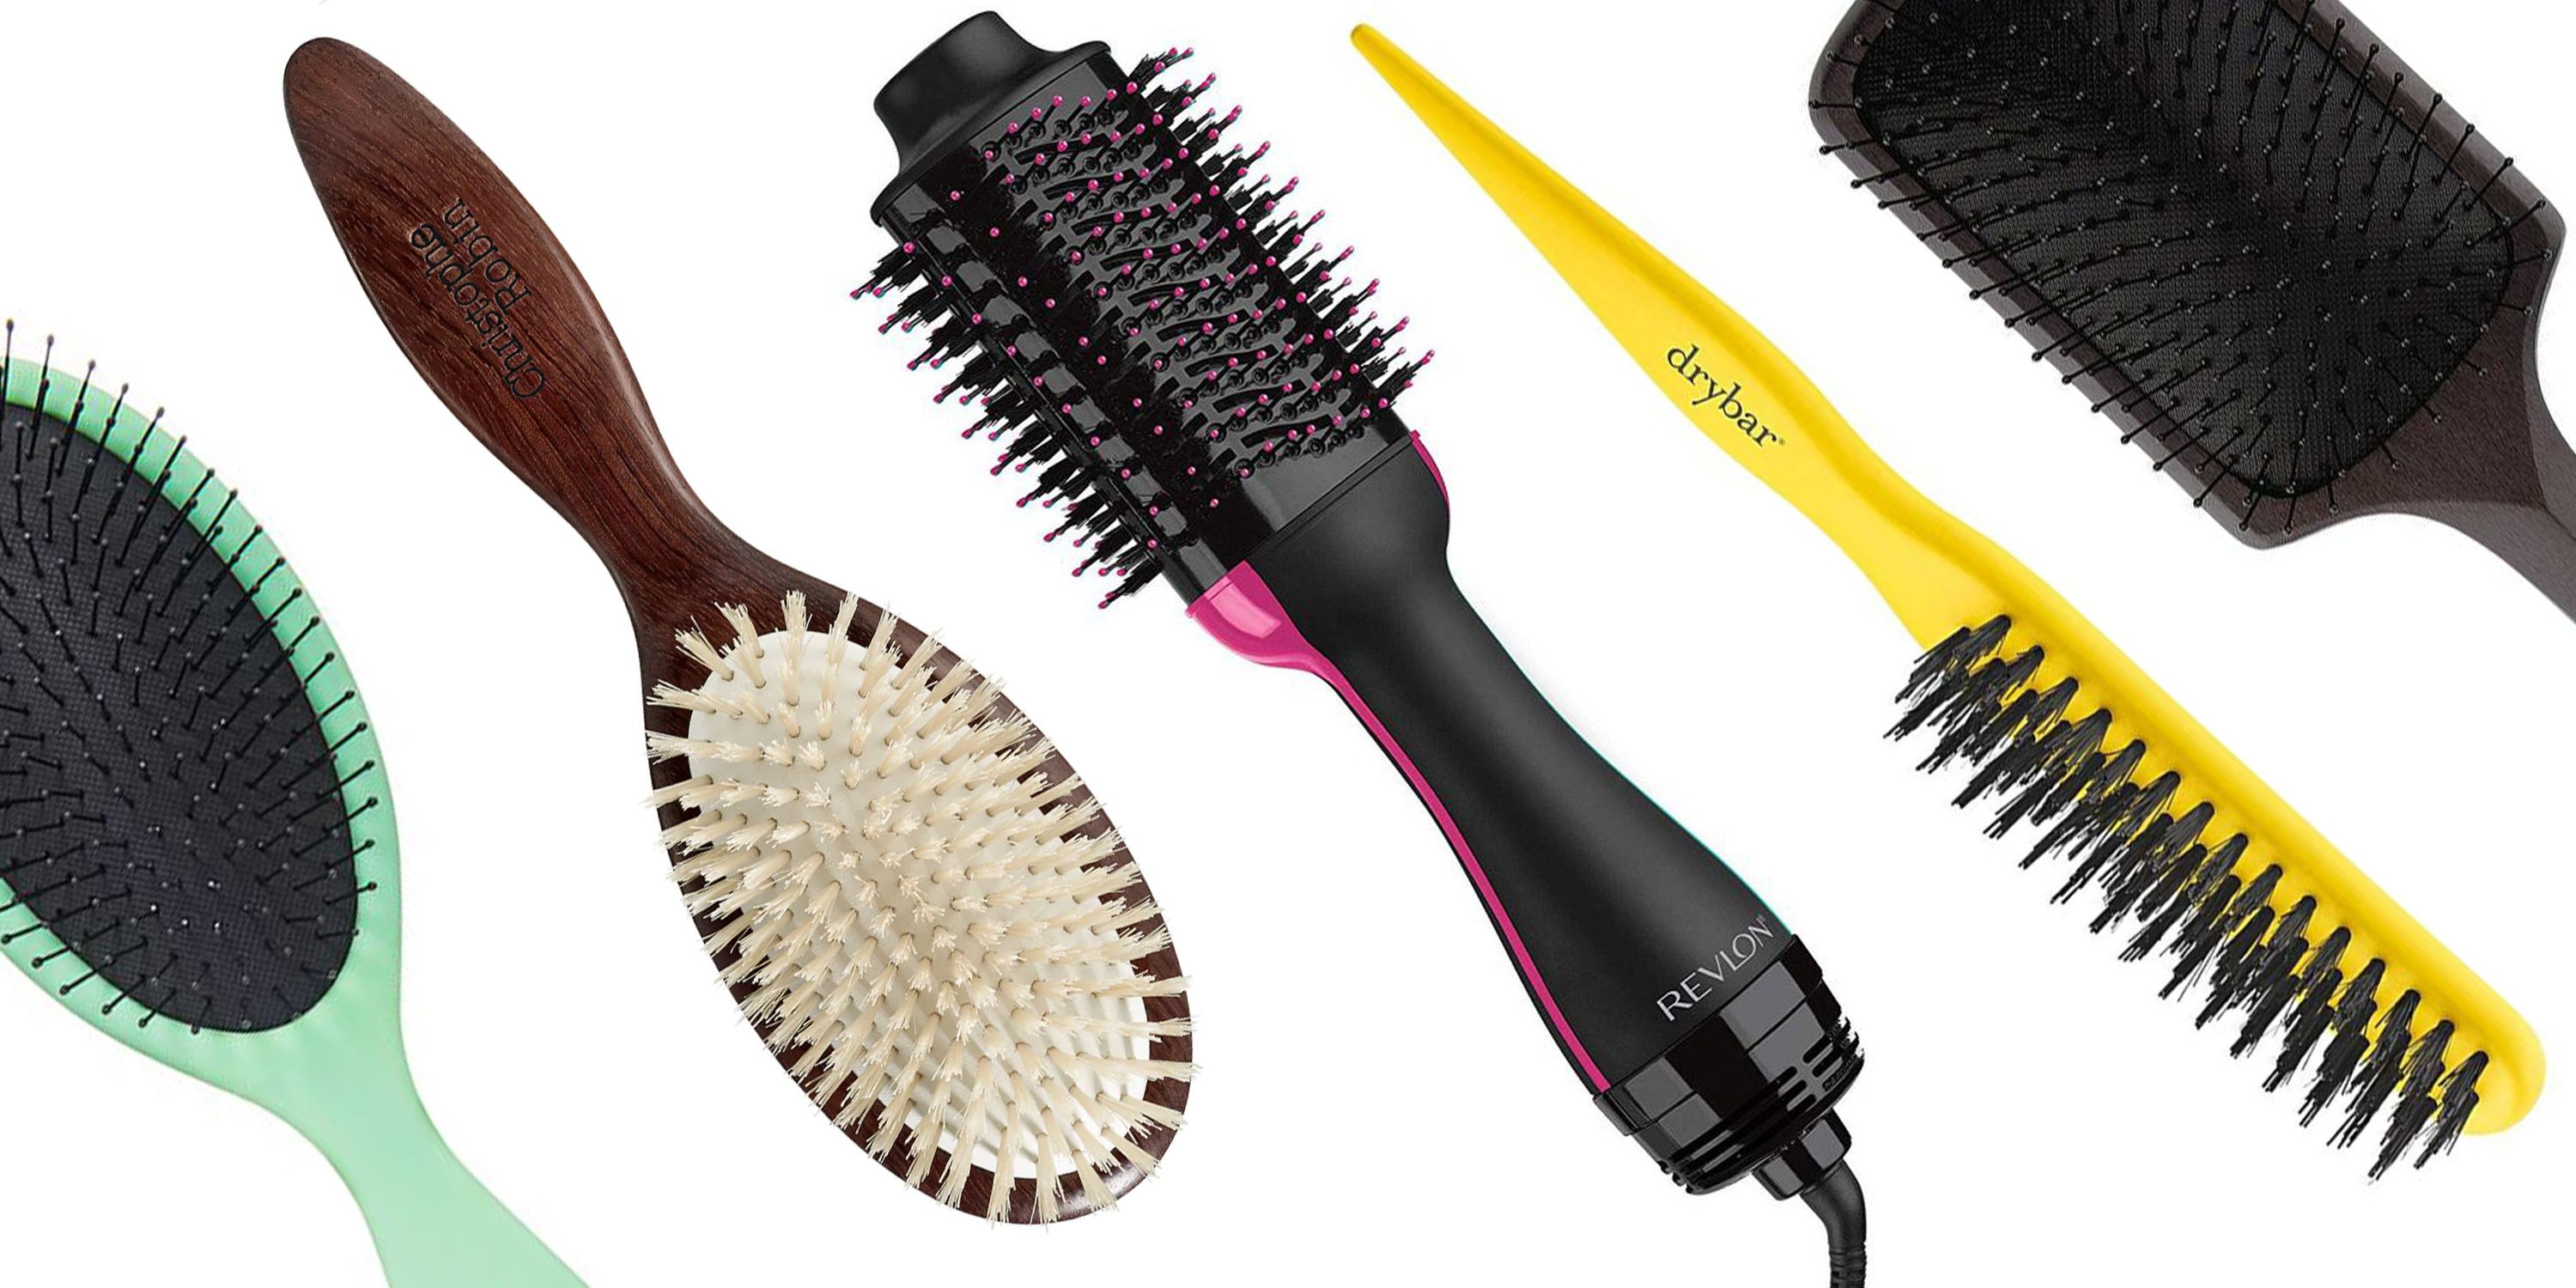 Conair Vent Brush Snag Free Ball Tipped Bristles Add Volume For all Hair Lengths